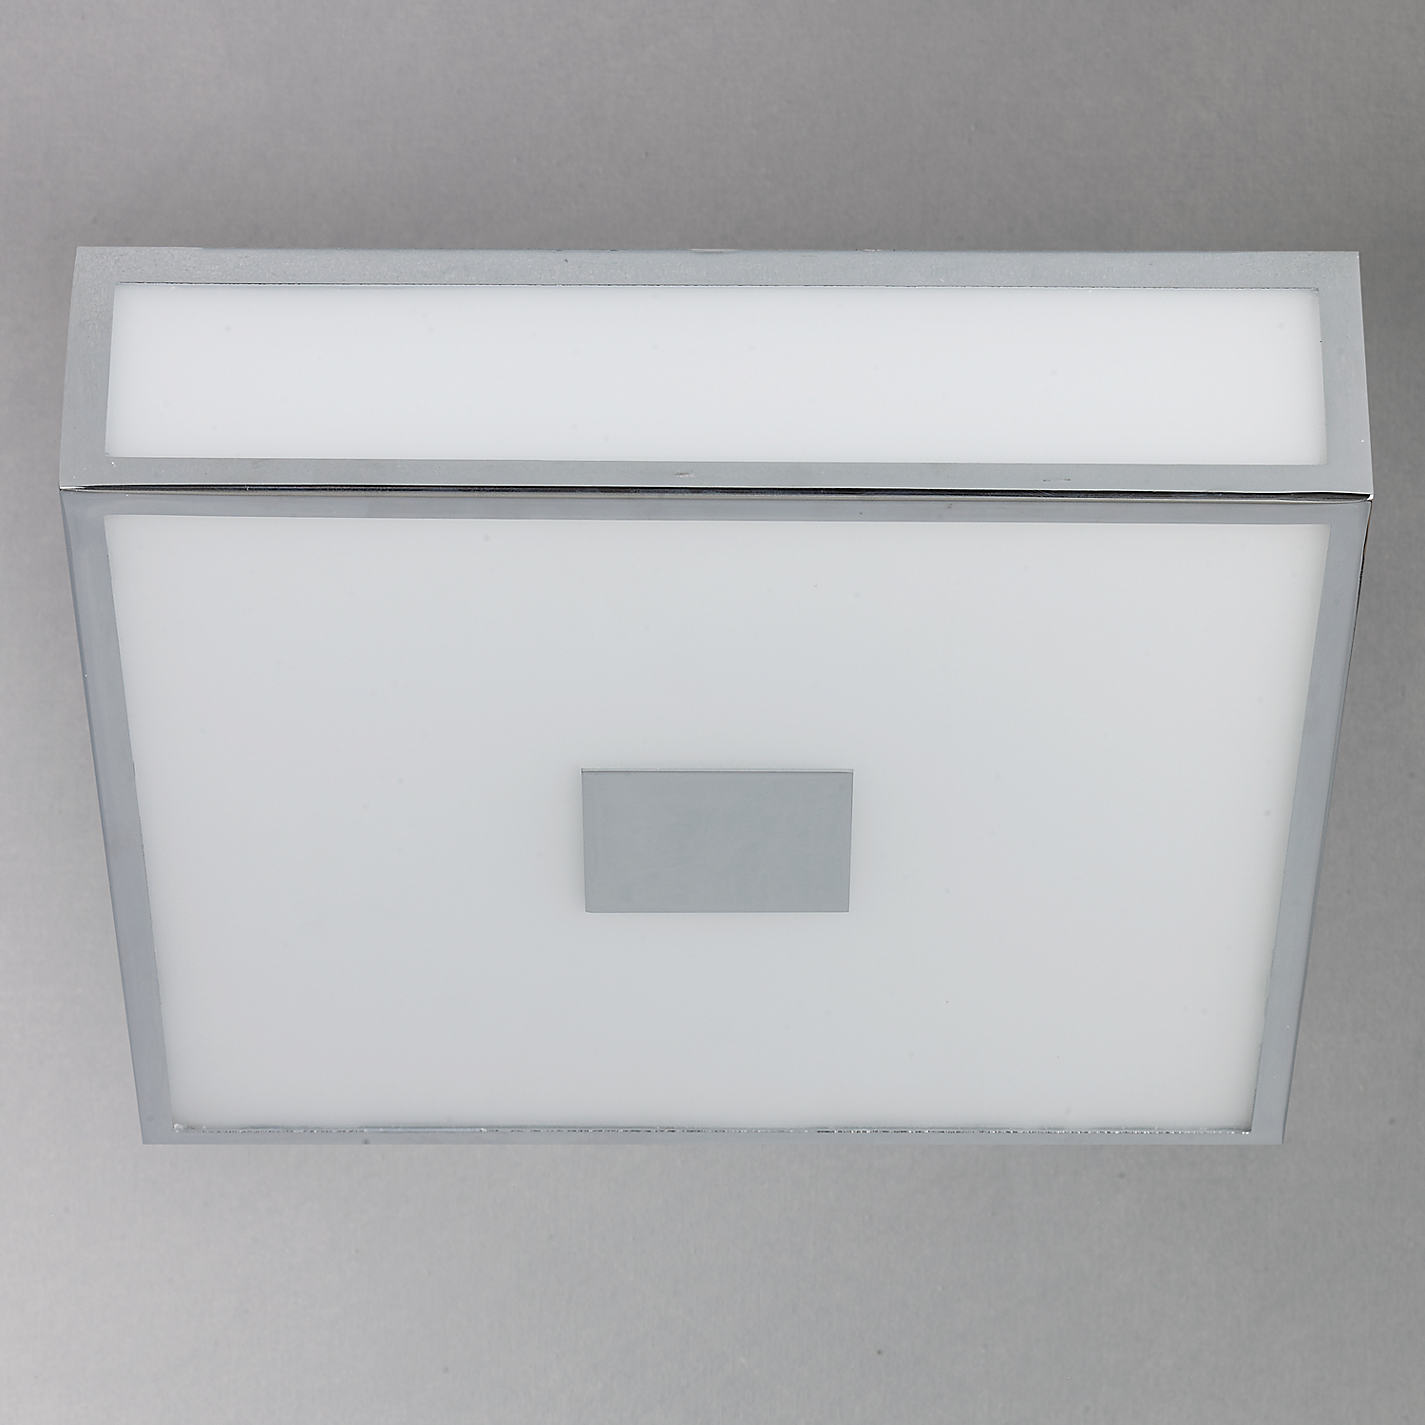 Bathroom Light Fixtures John Lewis buy astro mashiko bathroom light | john lewis